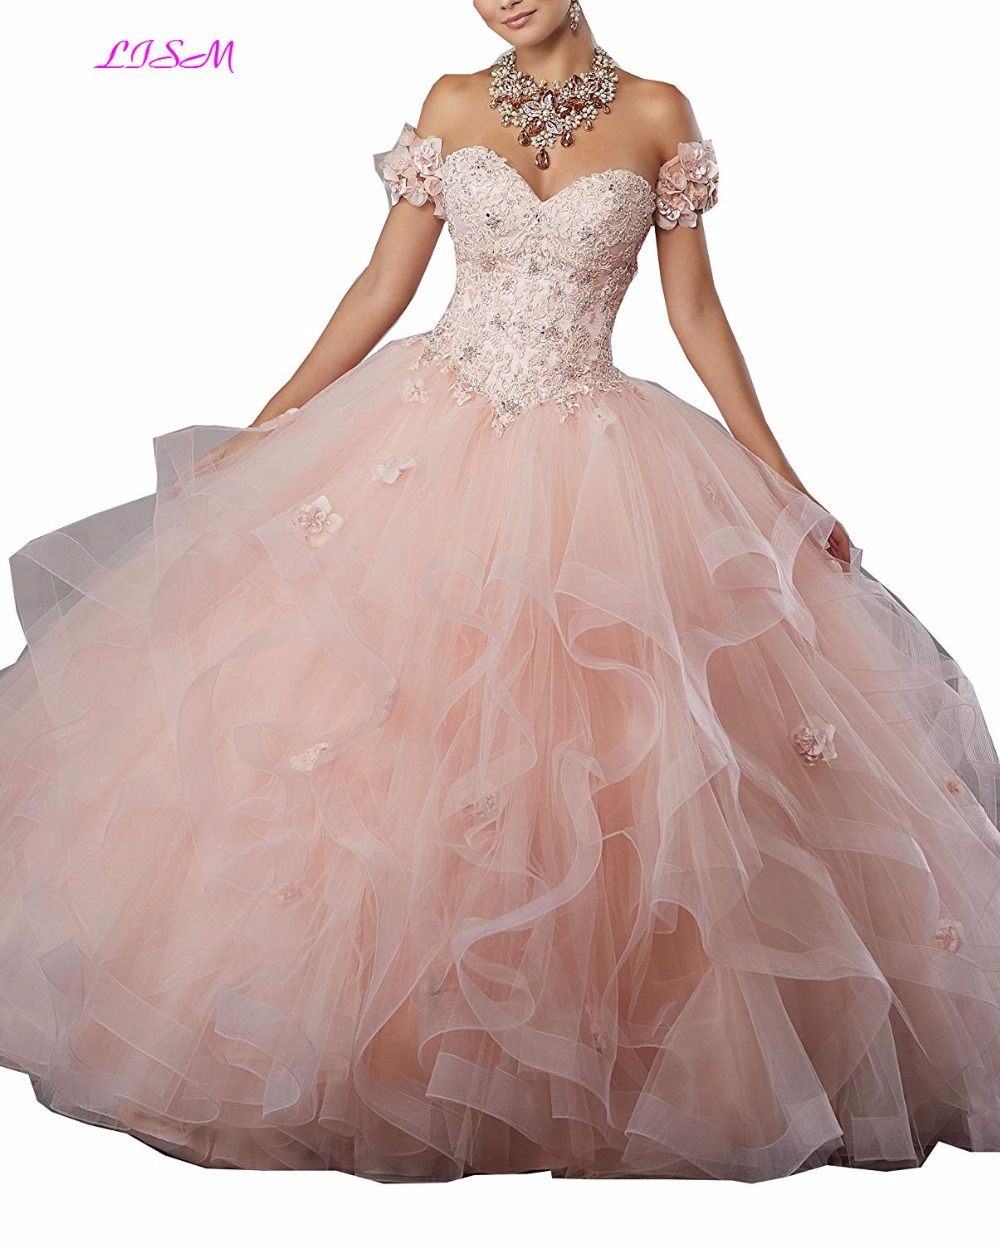 Sweetheart Lace Appliques Sweet 16 Quinceanera Dress Debutante Flowers Beadings Tulle Prom Party Gowns Long Lace